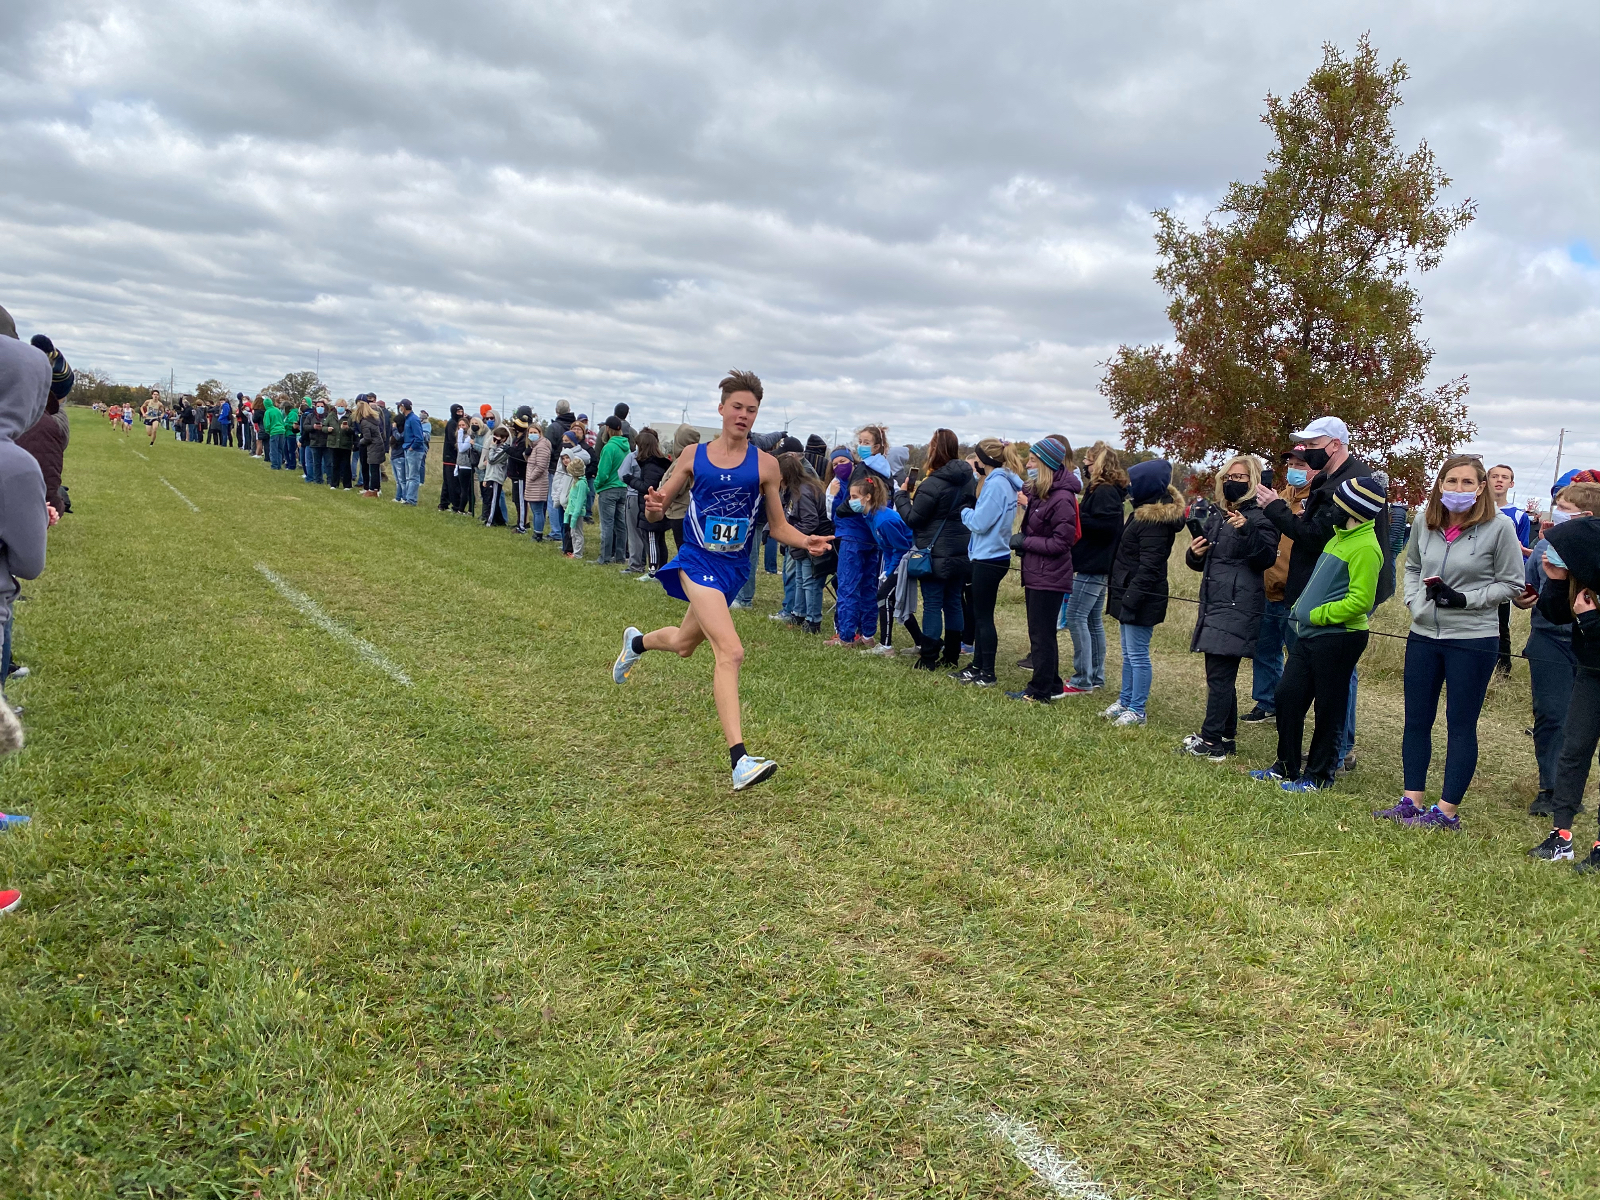 Dominic Schlueter and Lucien Flores Qualify for Regional Cross Country Race